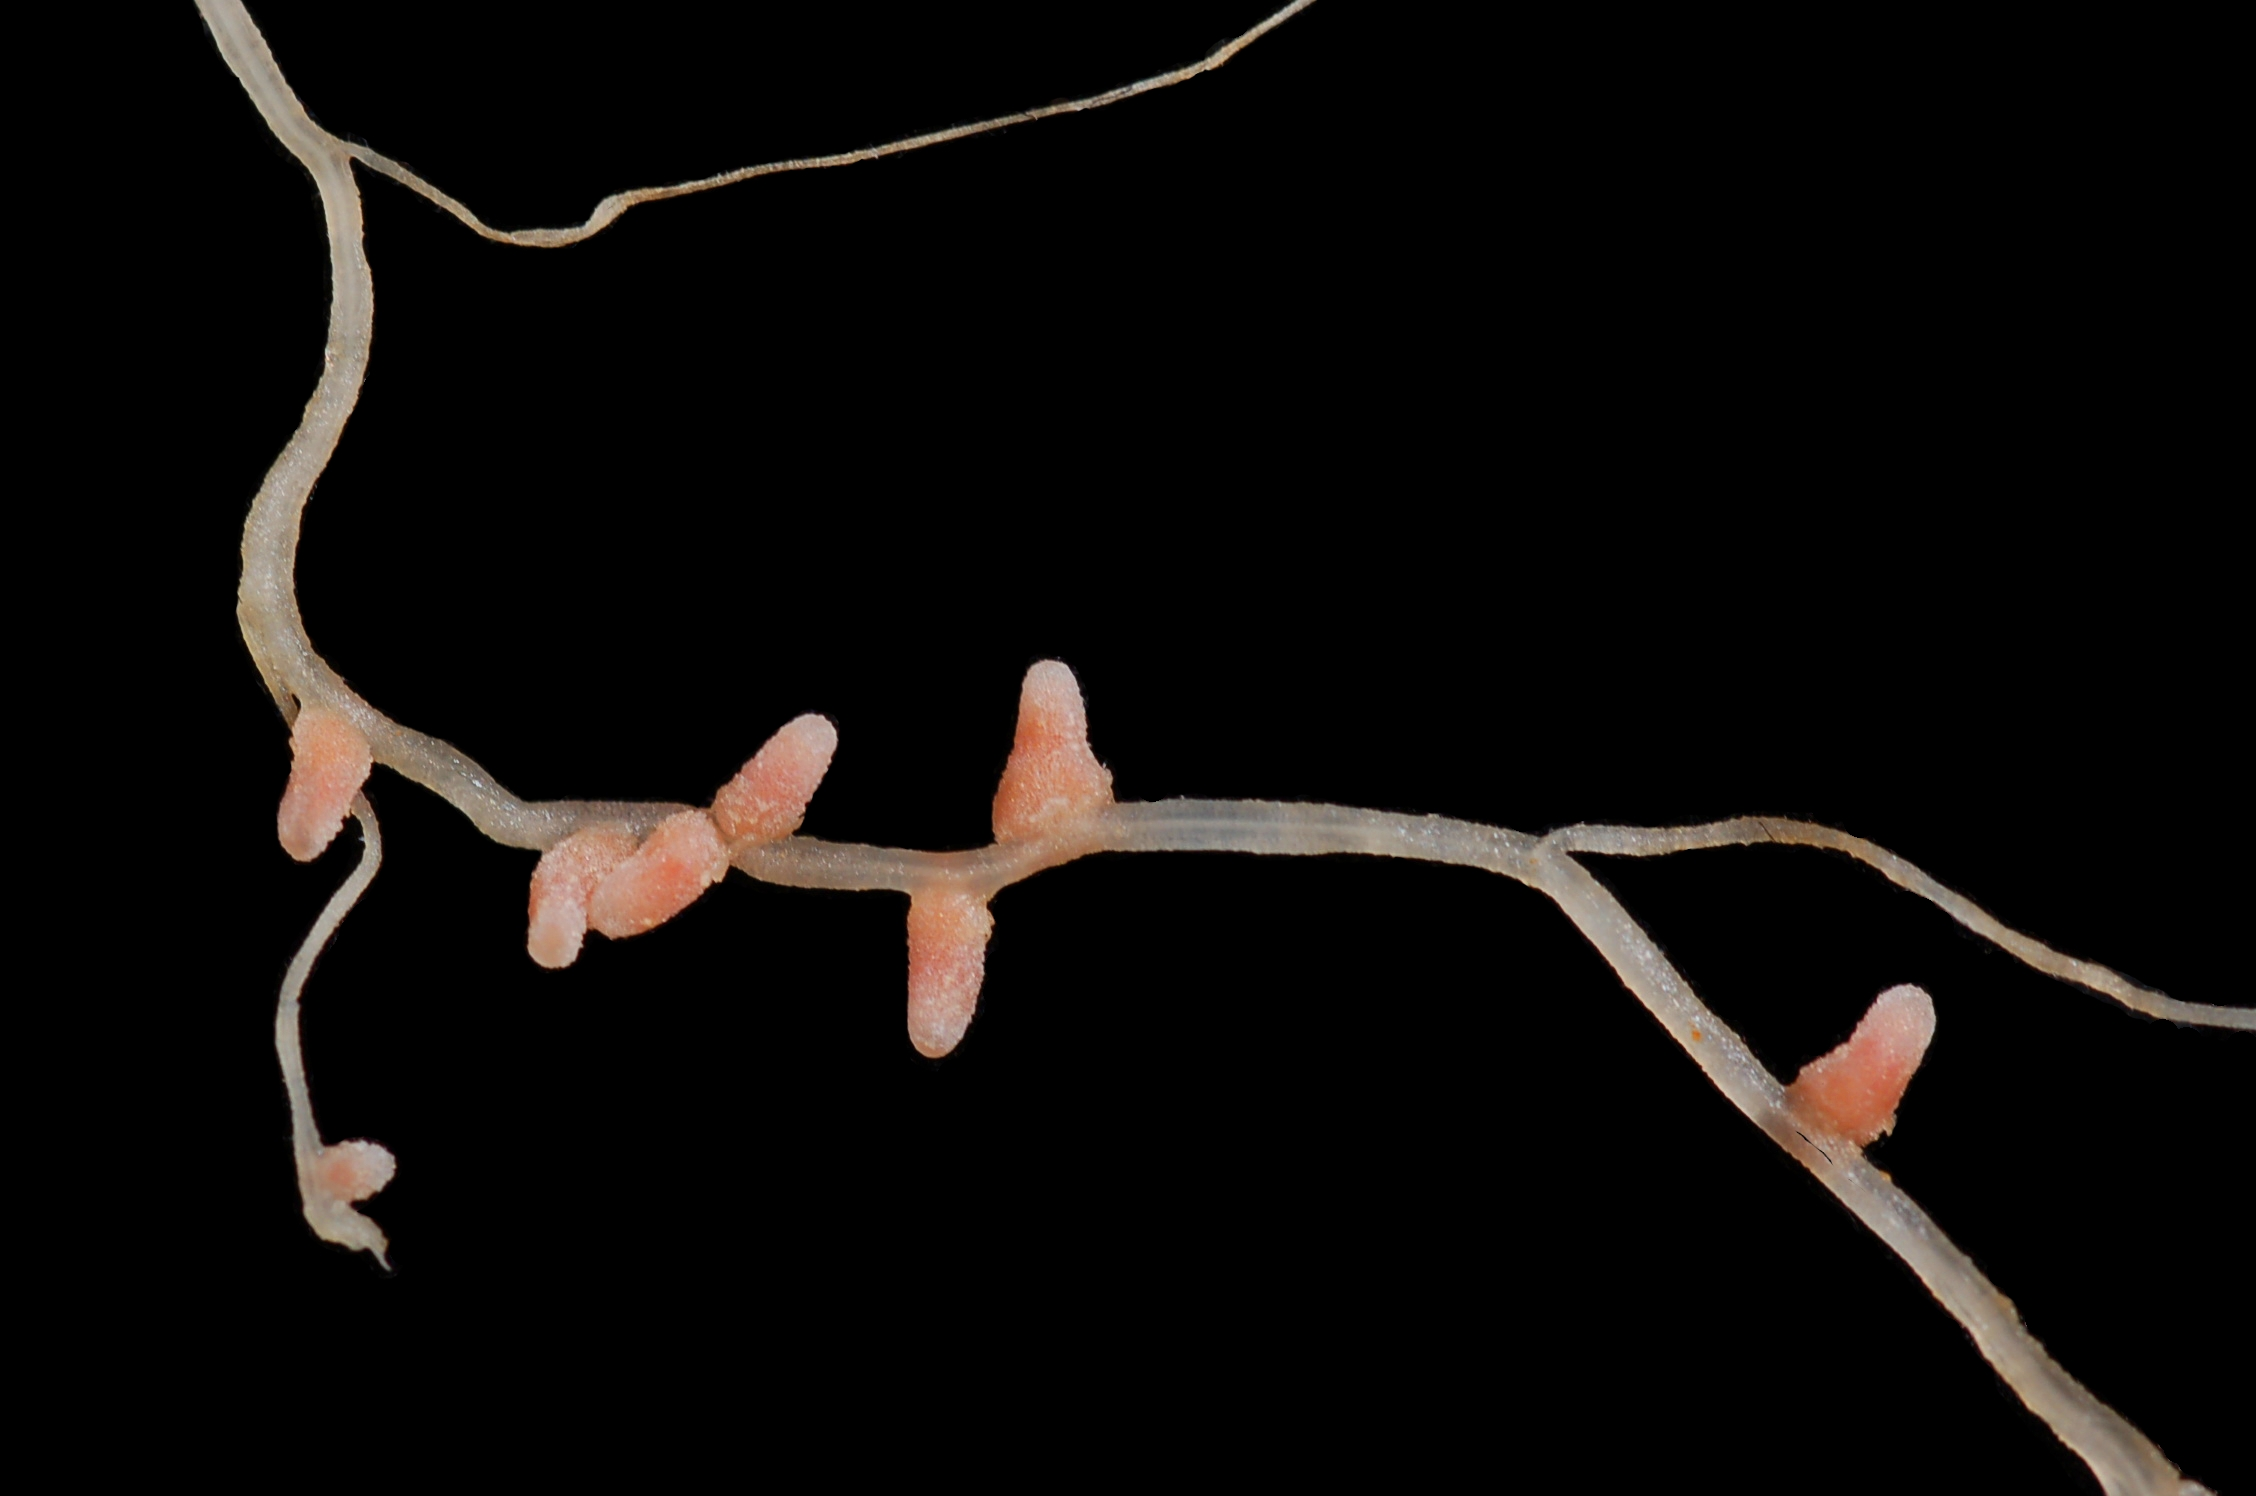 Nodulation: What Is It and Why Is It Important?